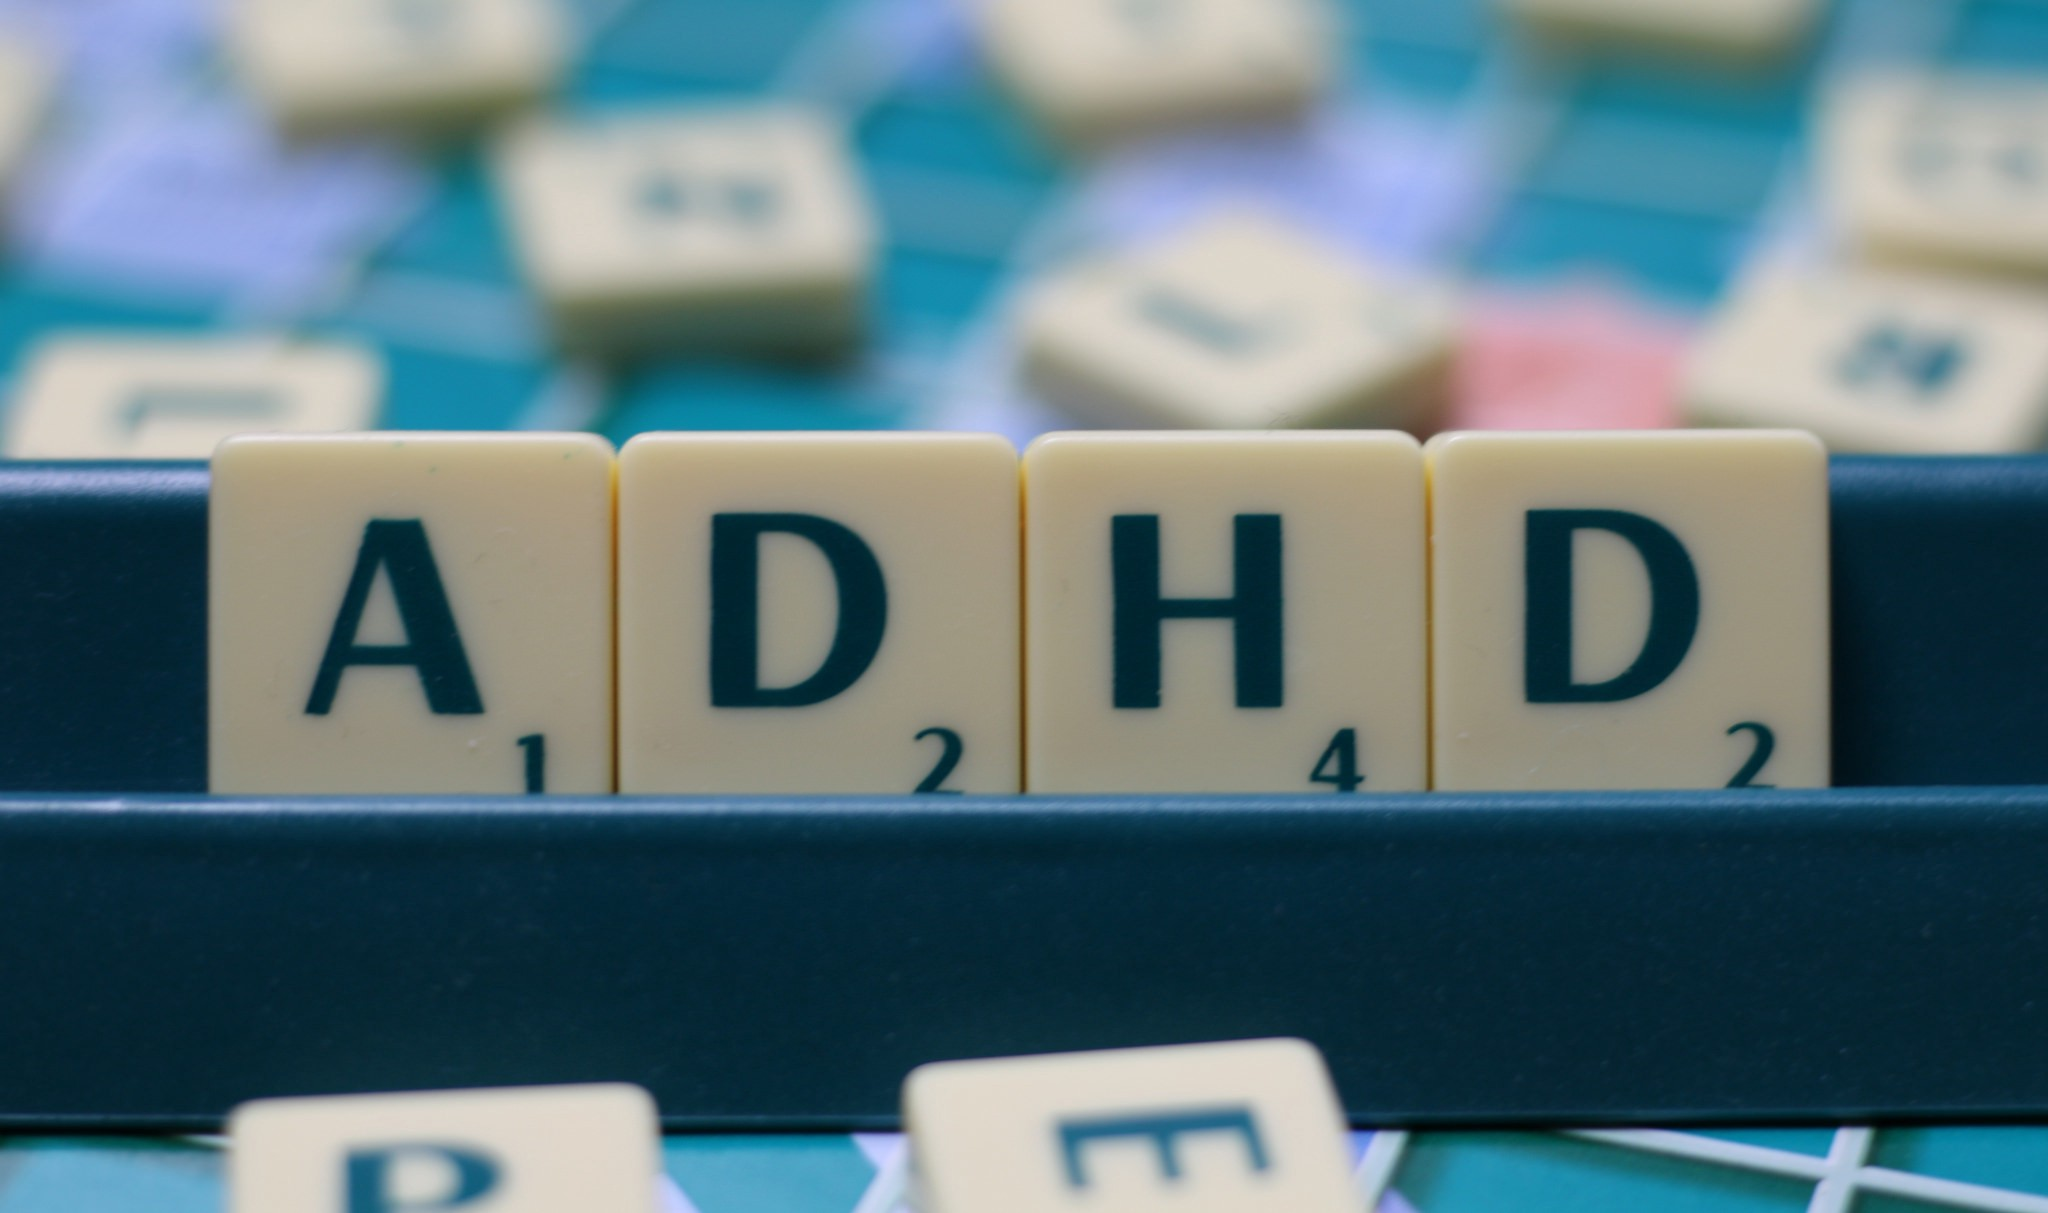 OCD dating ADHD